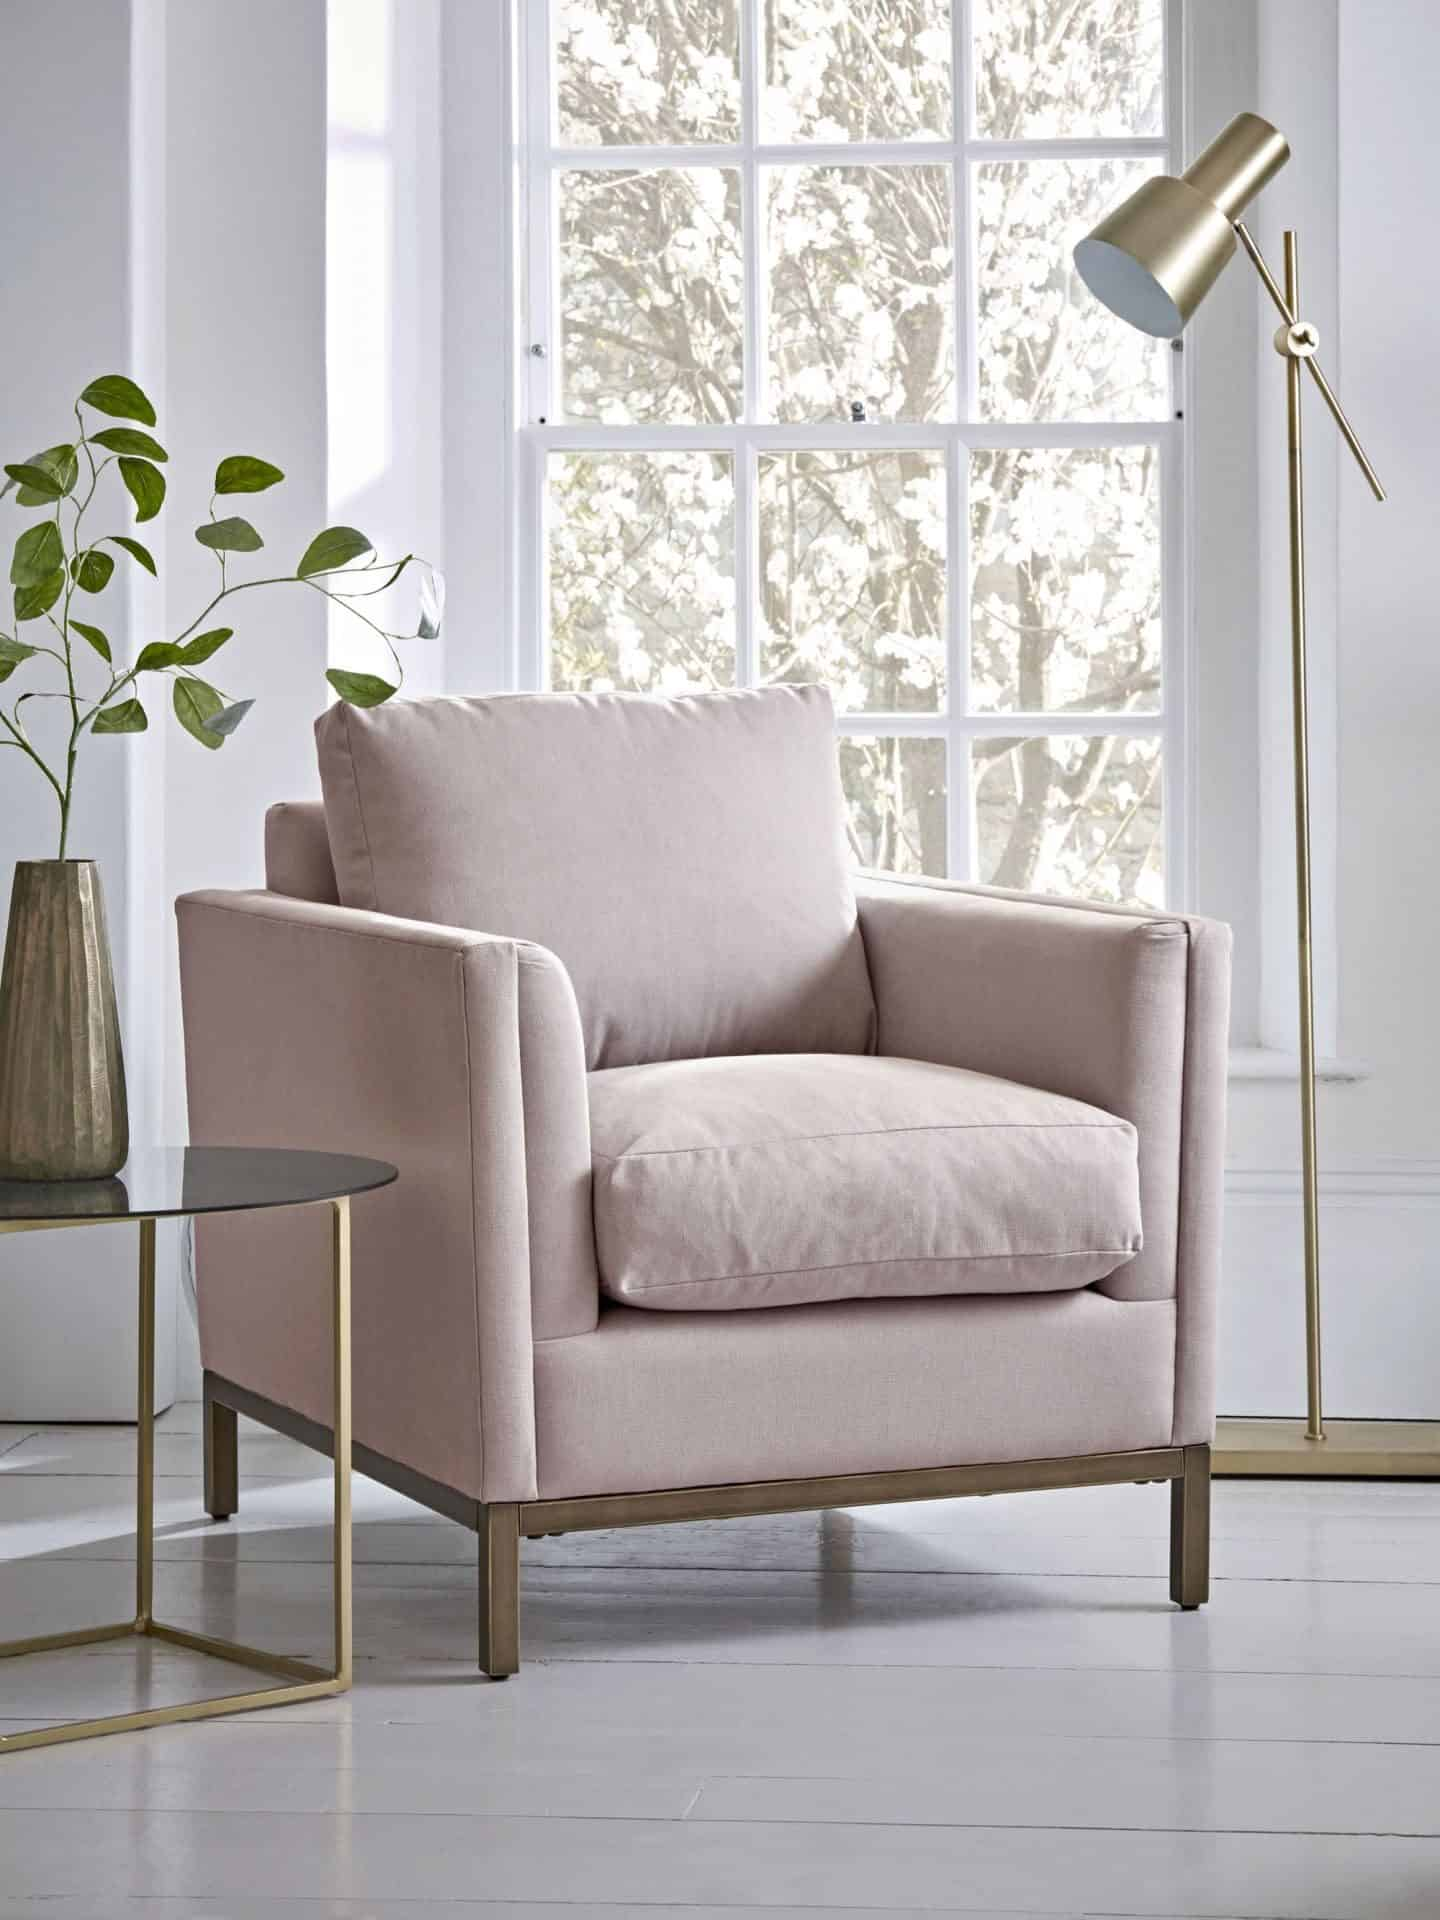 Pink armchair from Cox & Cox. Furniture can be found on furniture comparison website Kuldea